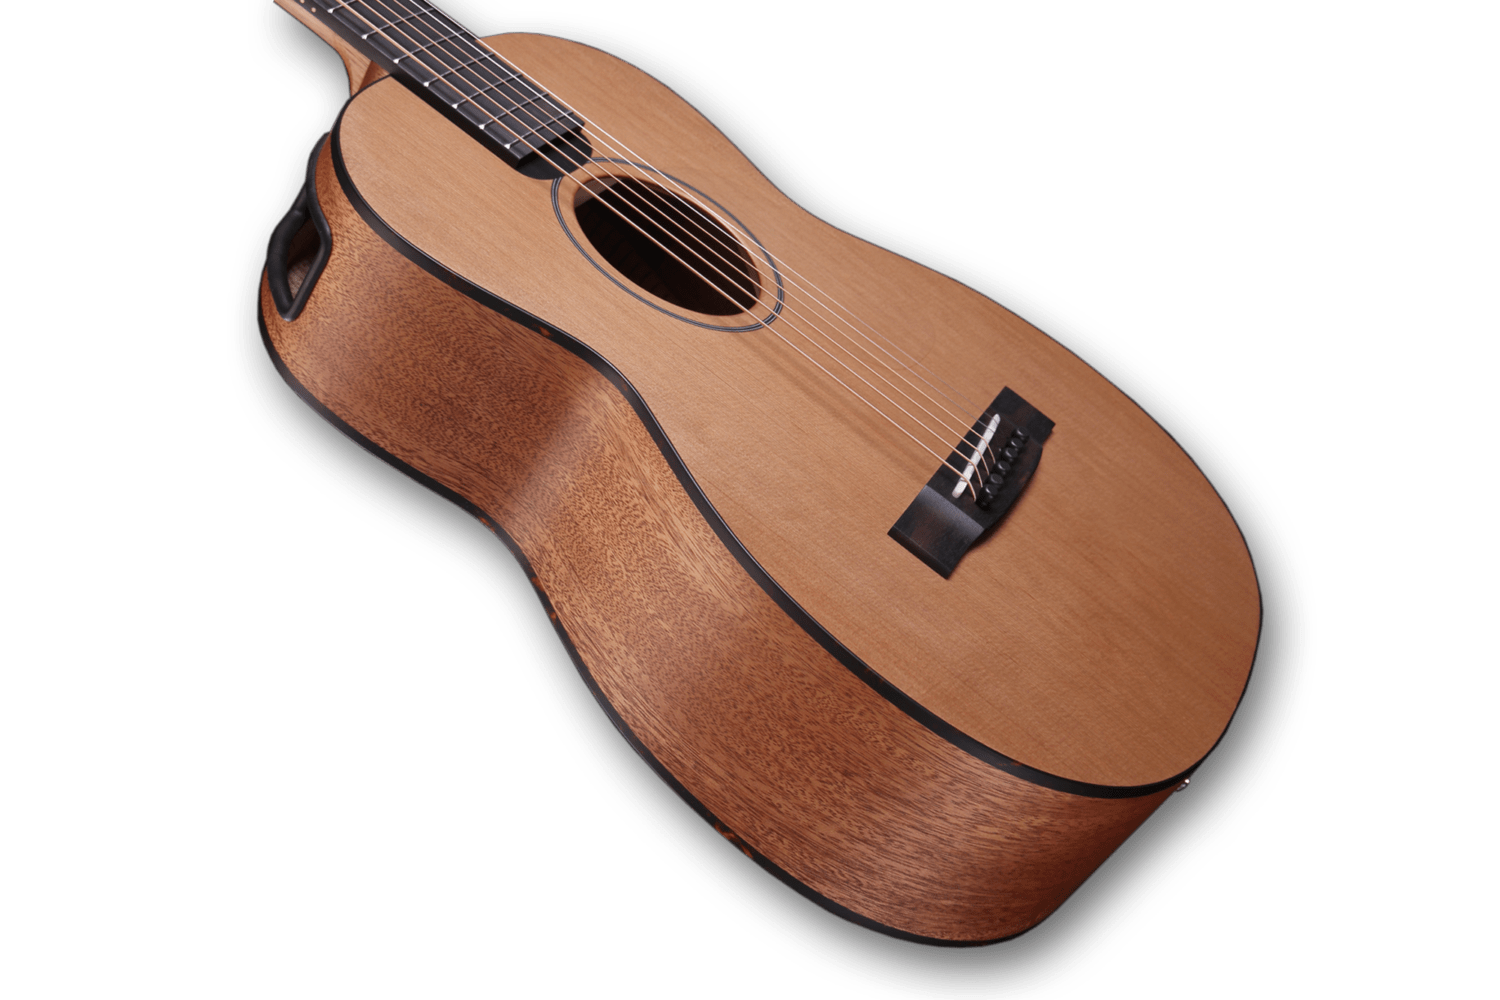 Little Jane Povrchova Uprava Furch Guitars